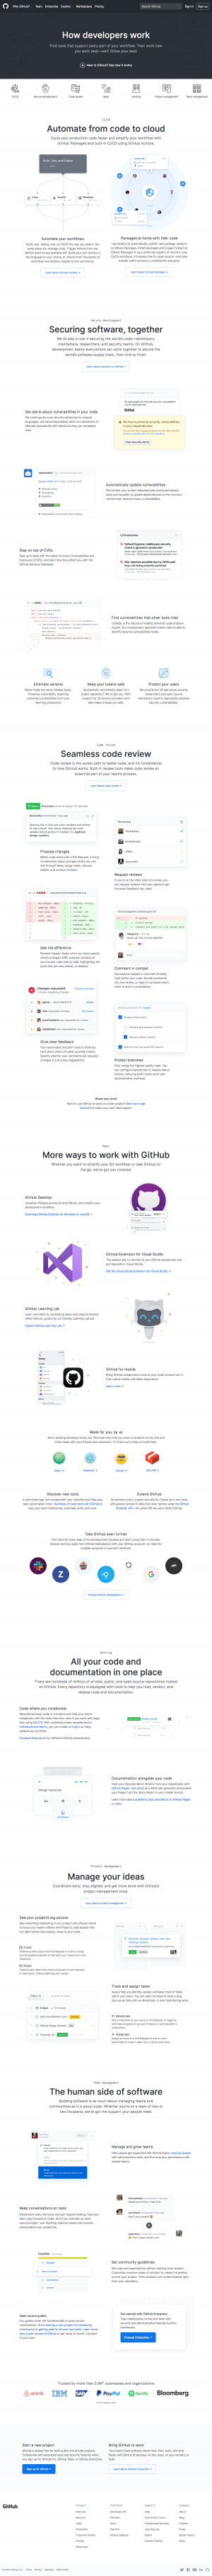 GitHub - Features page 1